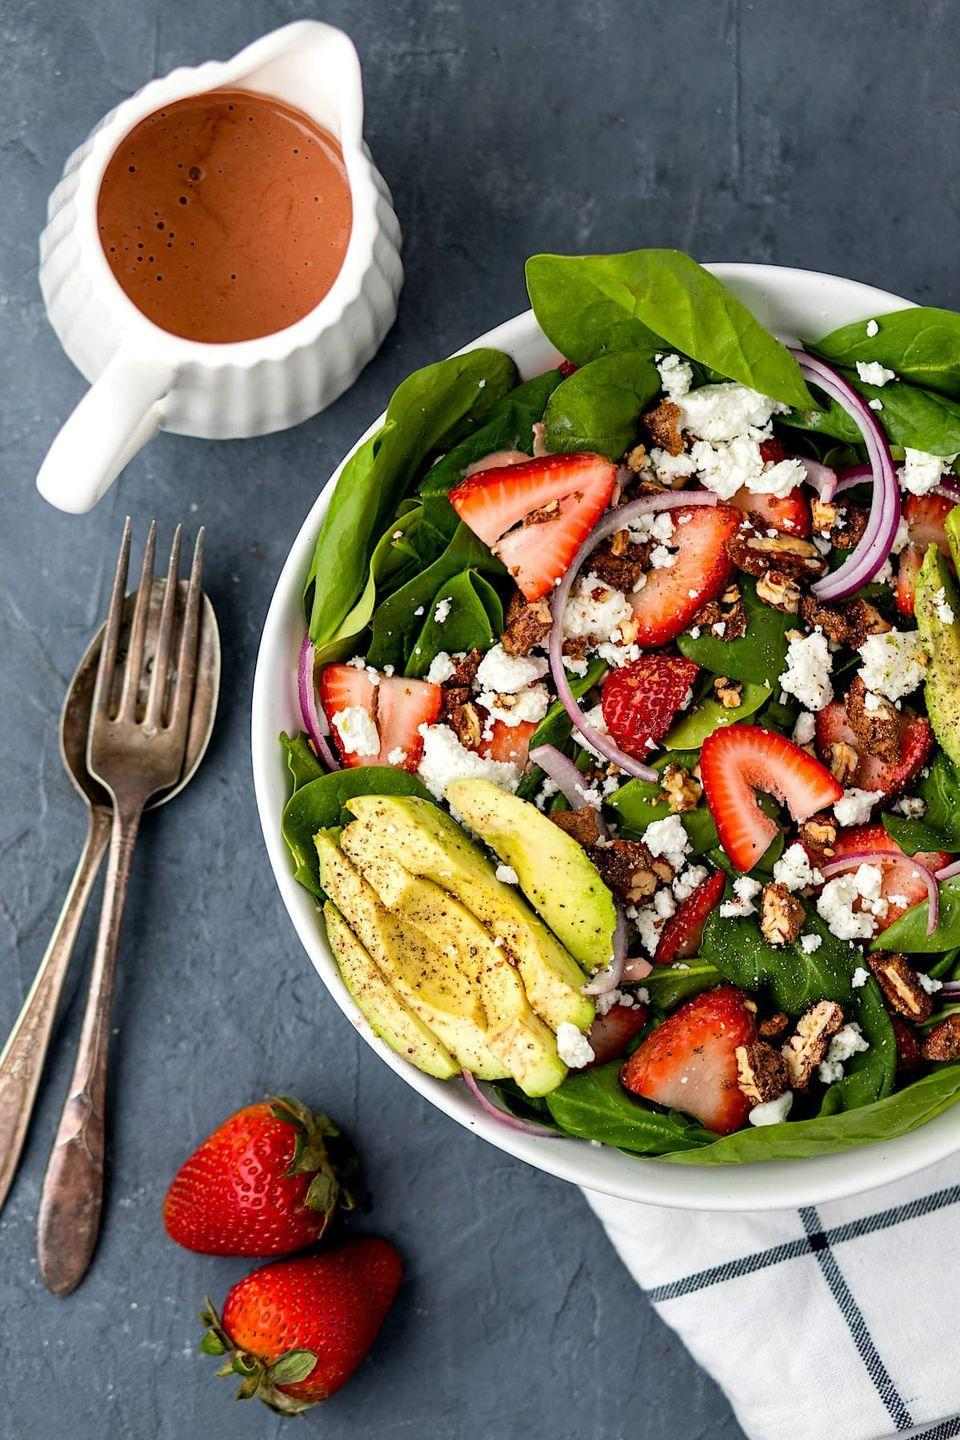 """<p>If a salad recipe is what you're after, there's no contesting the fact that spinach leaves topped with berries and a poppyseed dressing screams summer. </p><p><a href=""""https://www.twopeasandtheirpod.com/strawberry-spinach-salad-with-strawberry-dressing/"""" rel=""""nofollow noopener"""" target=""""_blank"""" data-ylk=""""slk:Get the recipe."""" class=""""link rapid-noclick-resp"""">Get the recipe. </a></p>"""